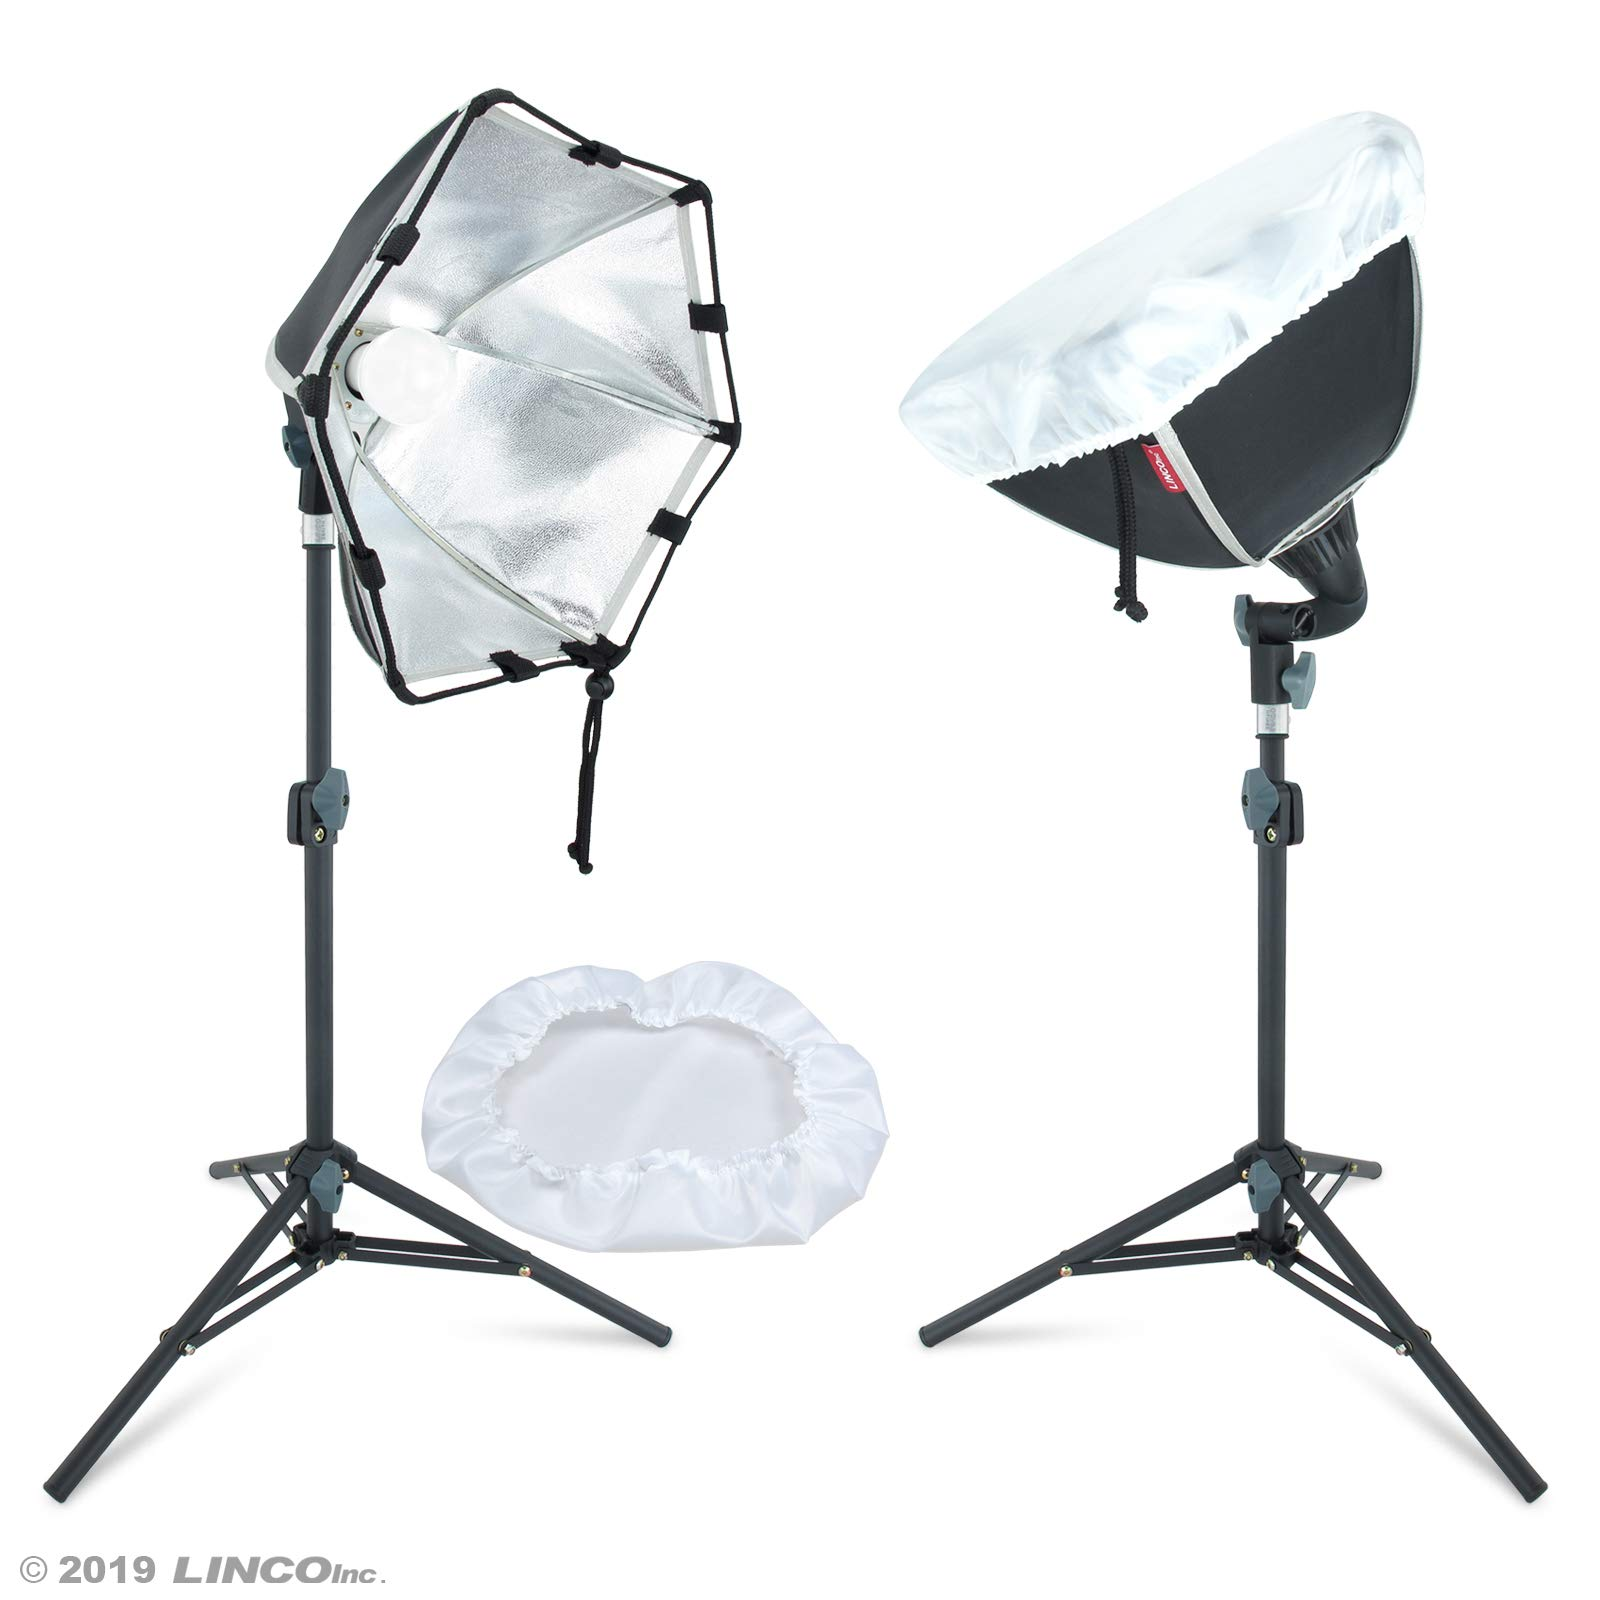 Linco Lincostore Photography Photo Table Top Studio Lighting Kit- 30 Seconds to Storage by Linco